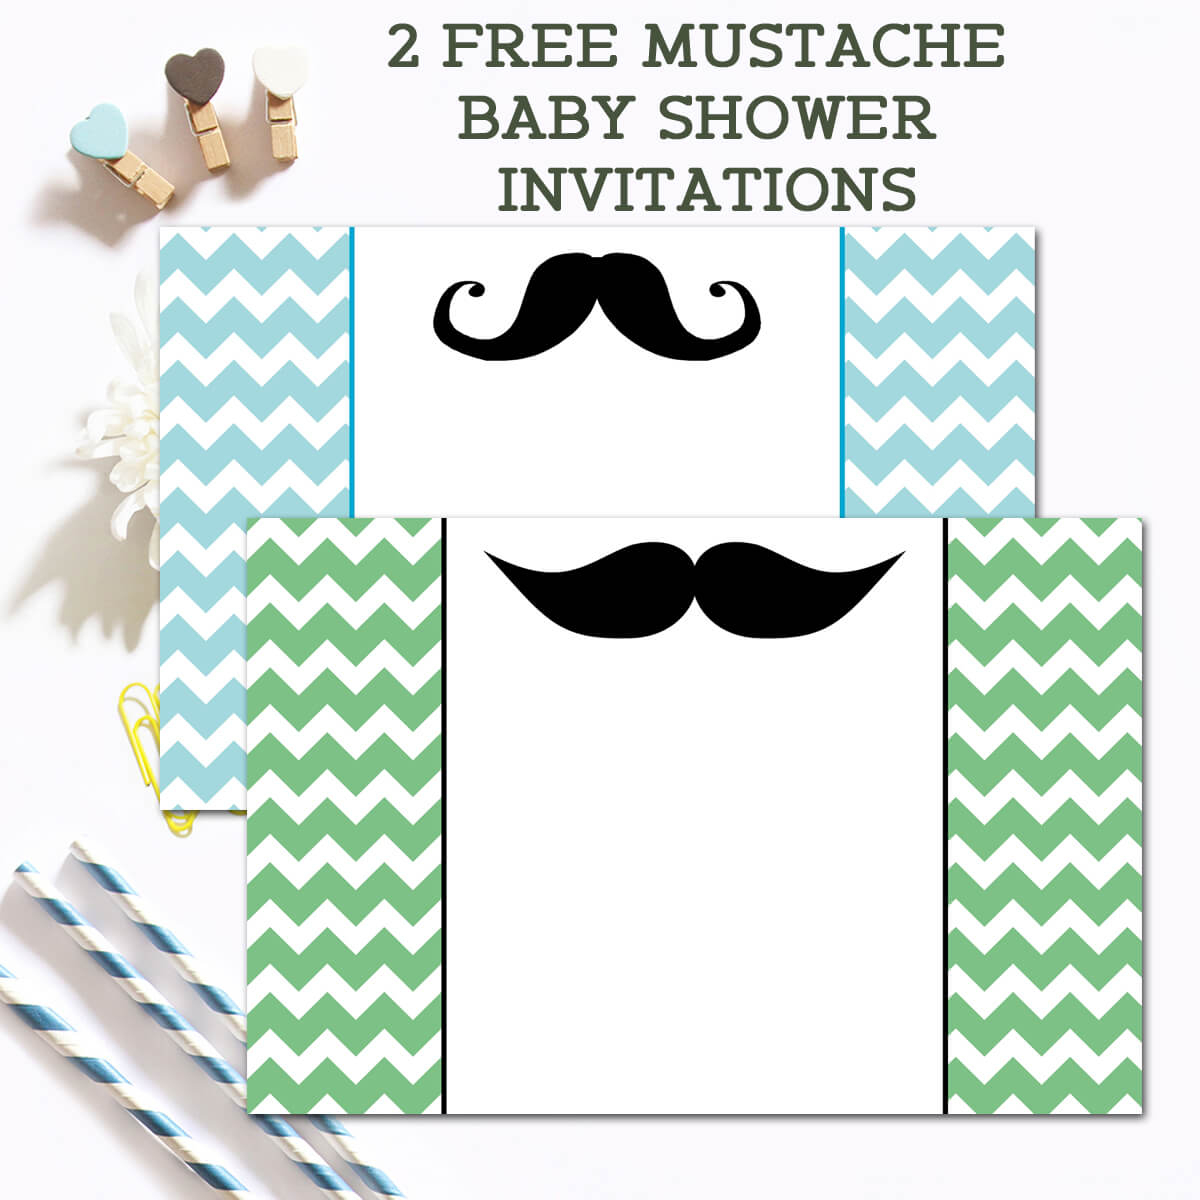 Free Mustache Baby Shower Invitations - Ilona's Passion - Free Printable Mustache Invitations